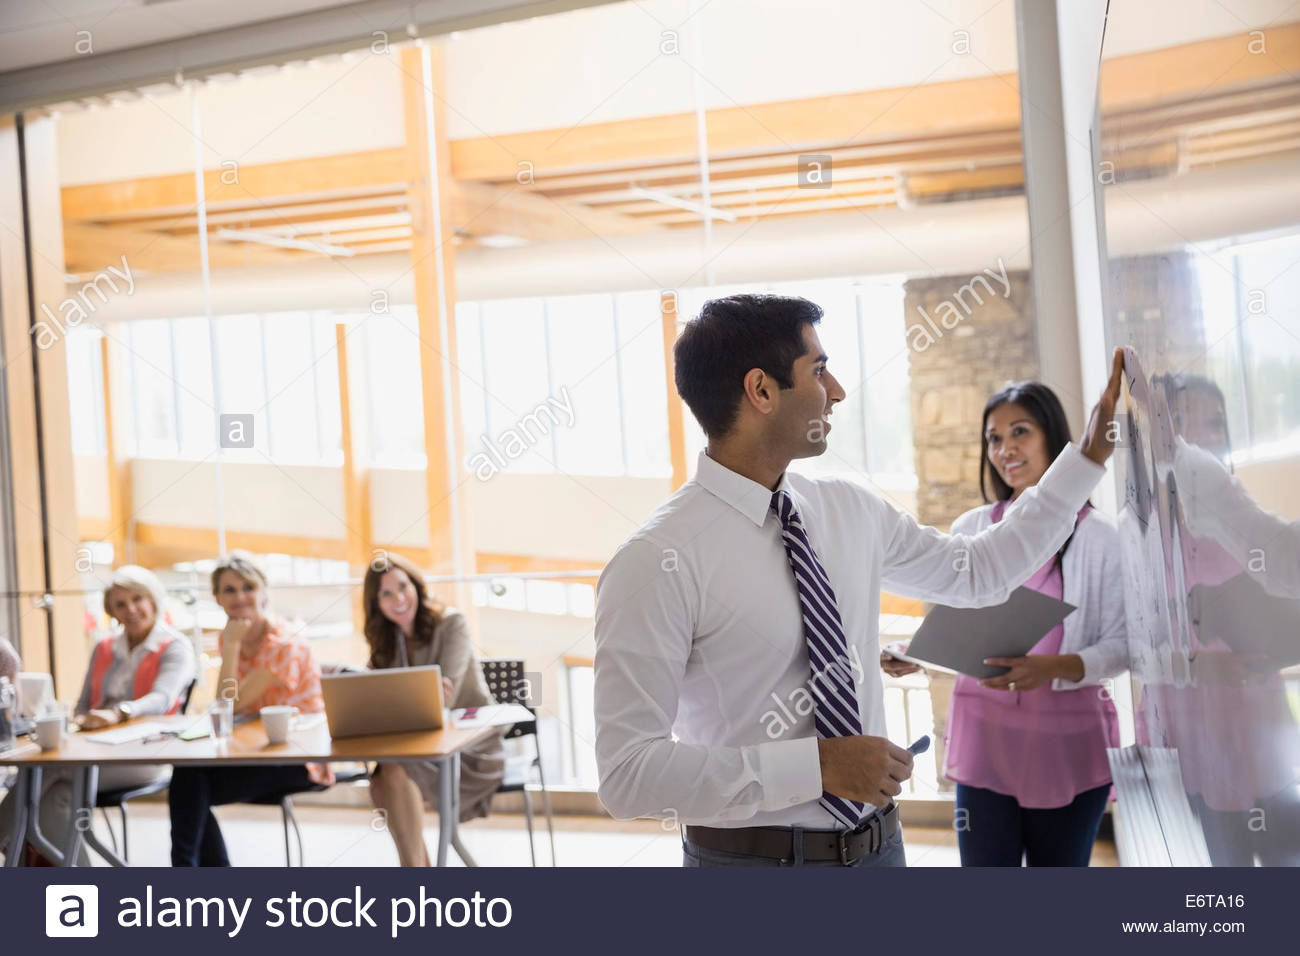 Businessman writing on white board in meeting - Stock Image